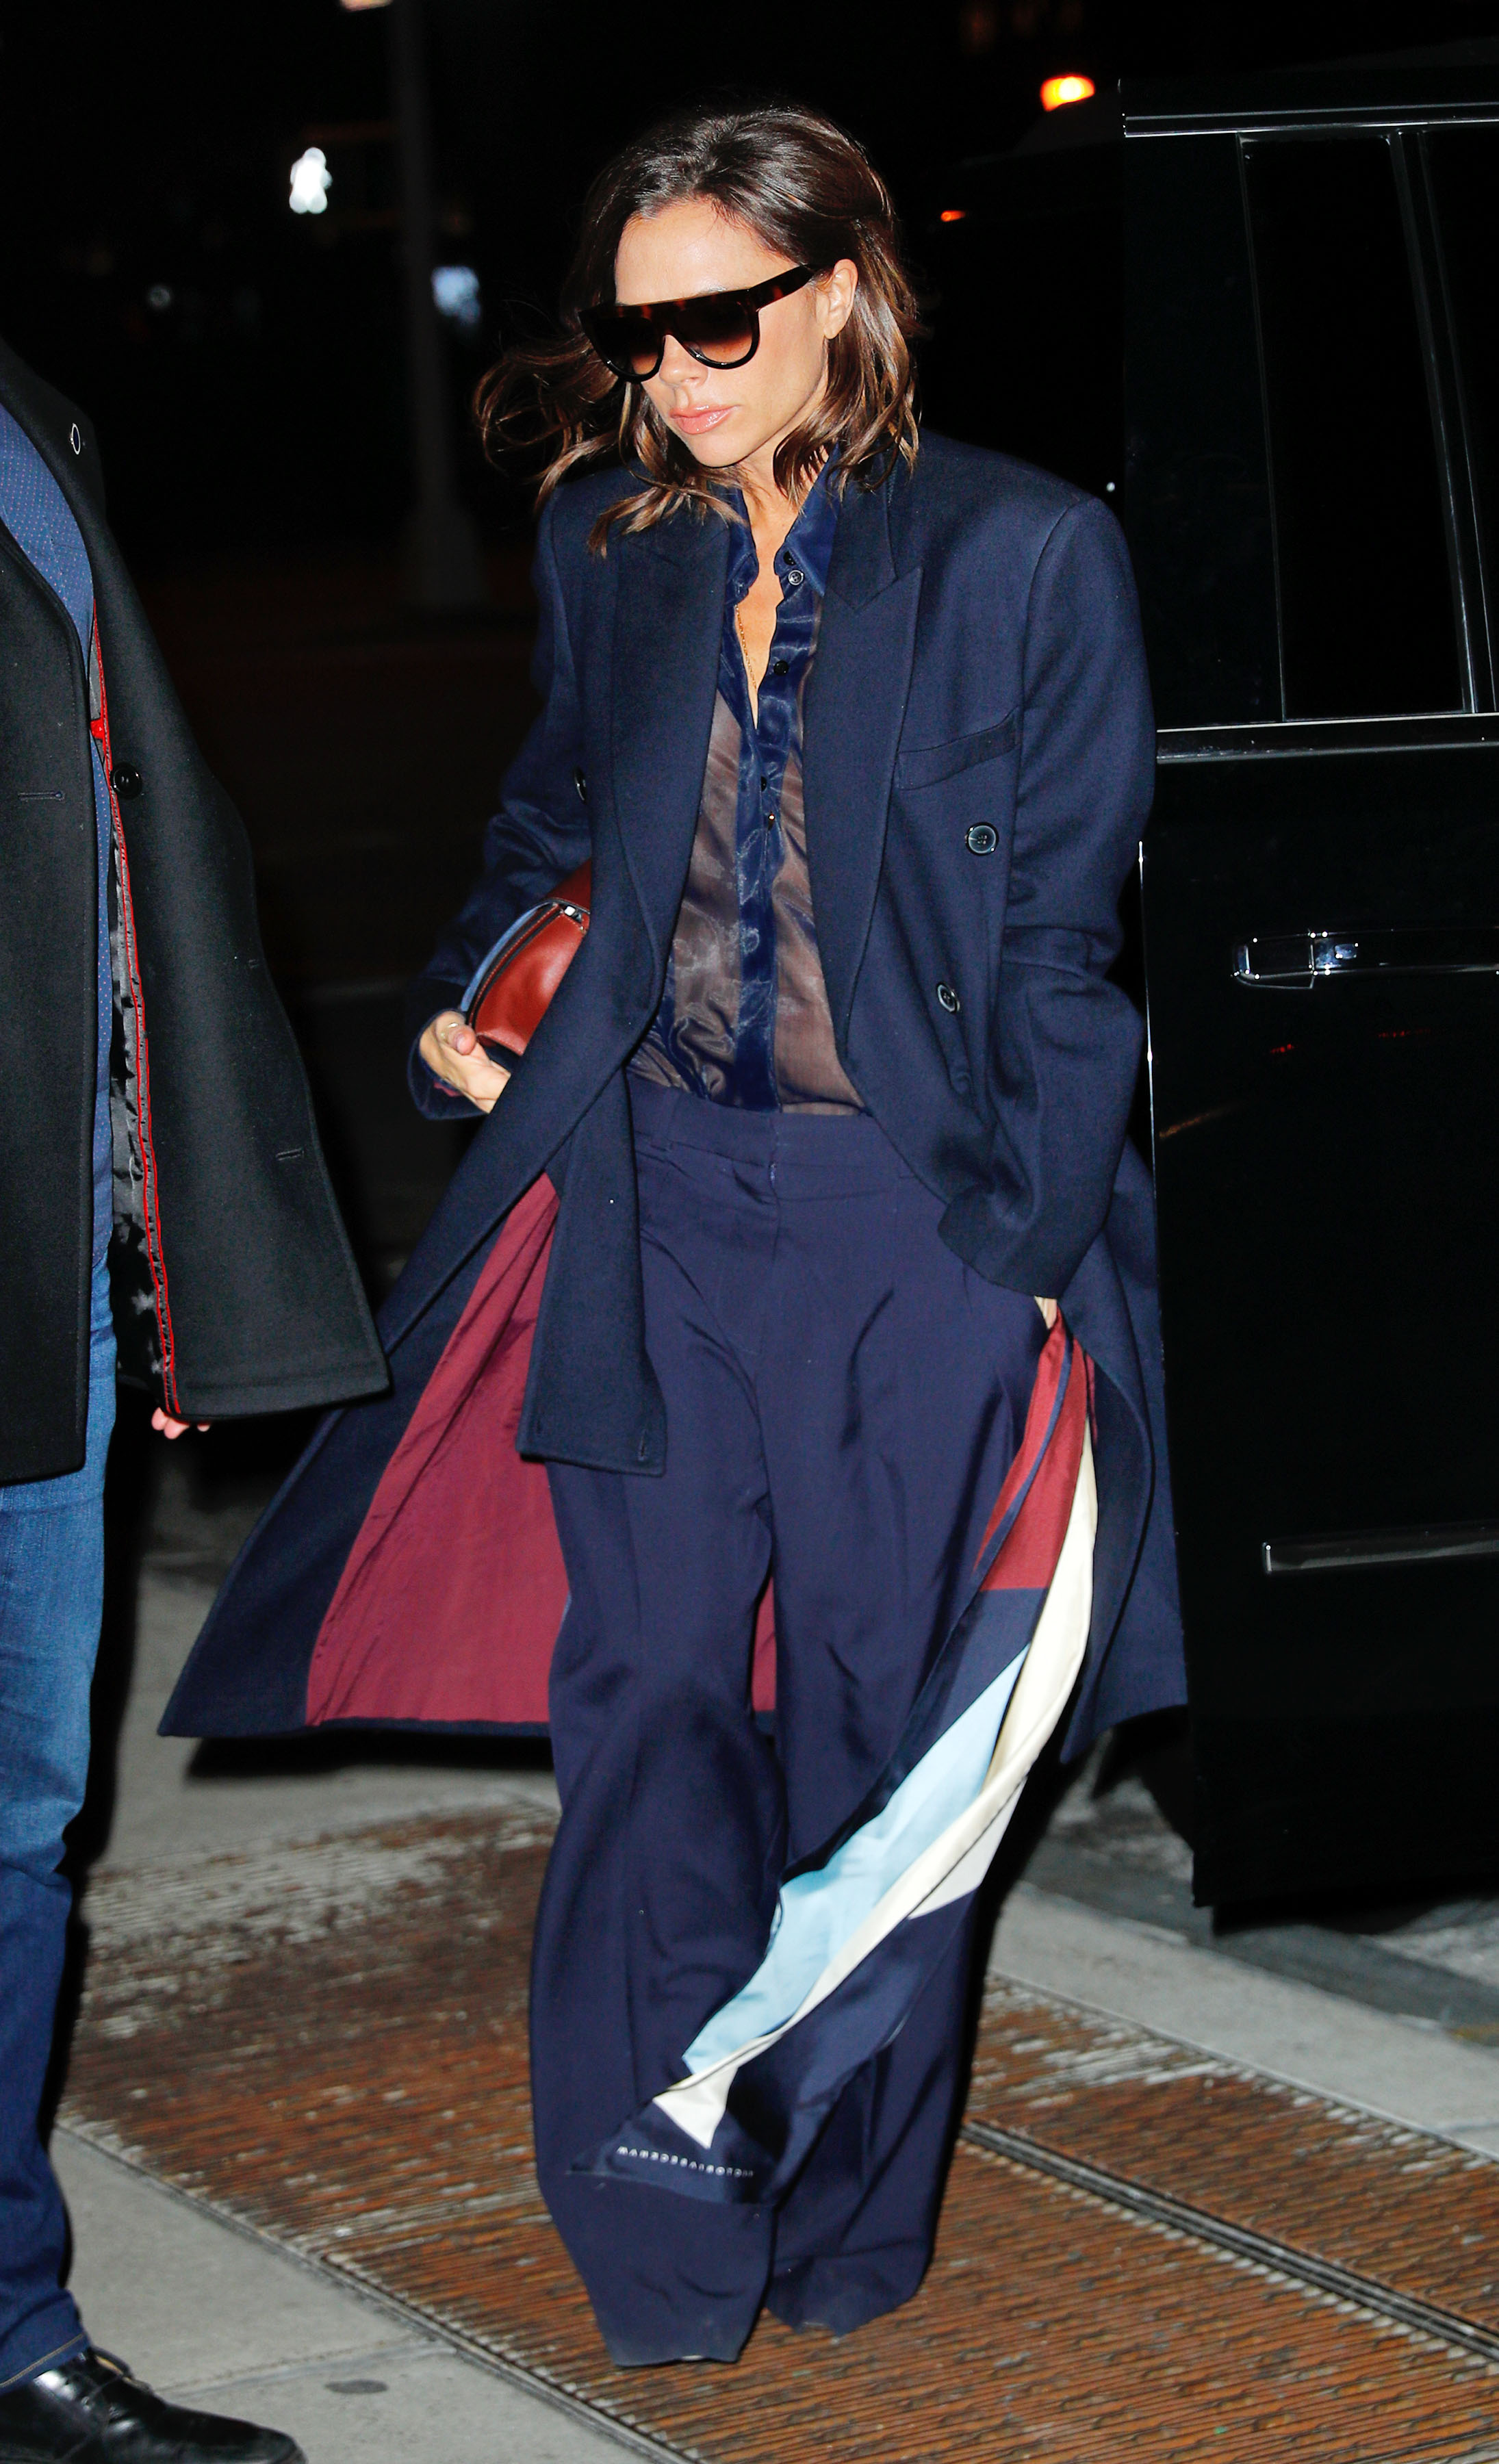 Victoria Beckham wears a chic navy outfit as she arrives outside her hotel in New York City, New York. <P> Pictured: Victoria Beckham <B>Ref: SPL1461587  140317  </B><BR/> Picture by: Jackson Lee / Splash News<BR/> </P><P> <B>Splash News and Pictures</B><BR/> Los Angeles:310-821-2666<BR/> New York:212-619-2666<BR/> London:870-934-2666<BR/> <span id=